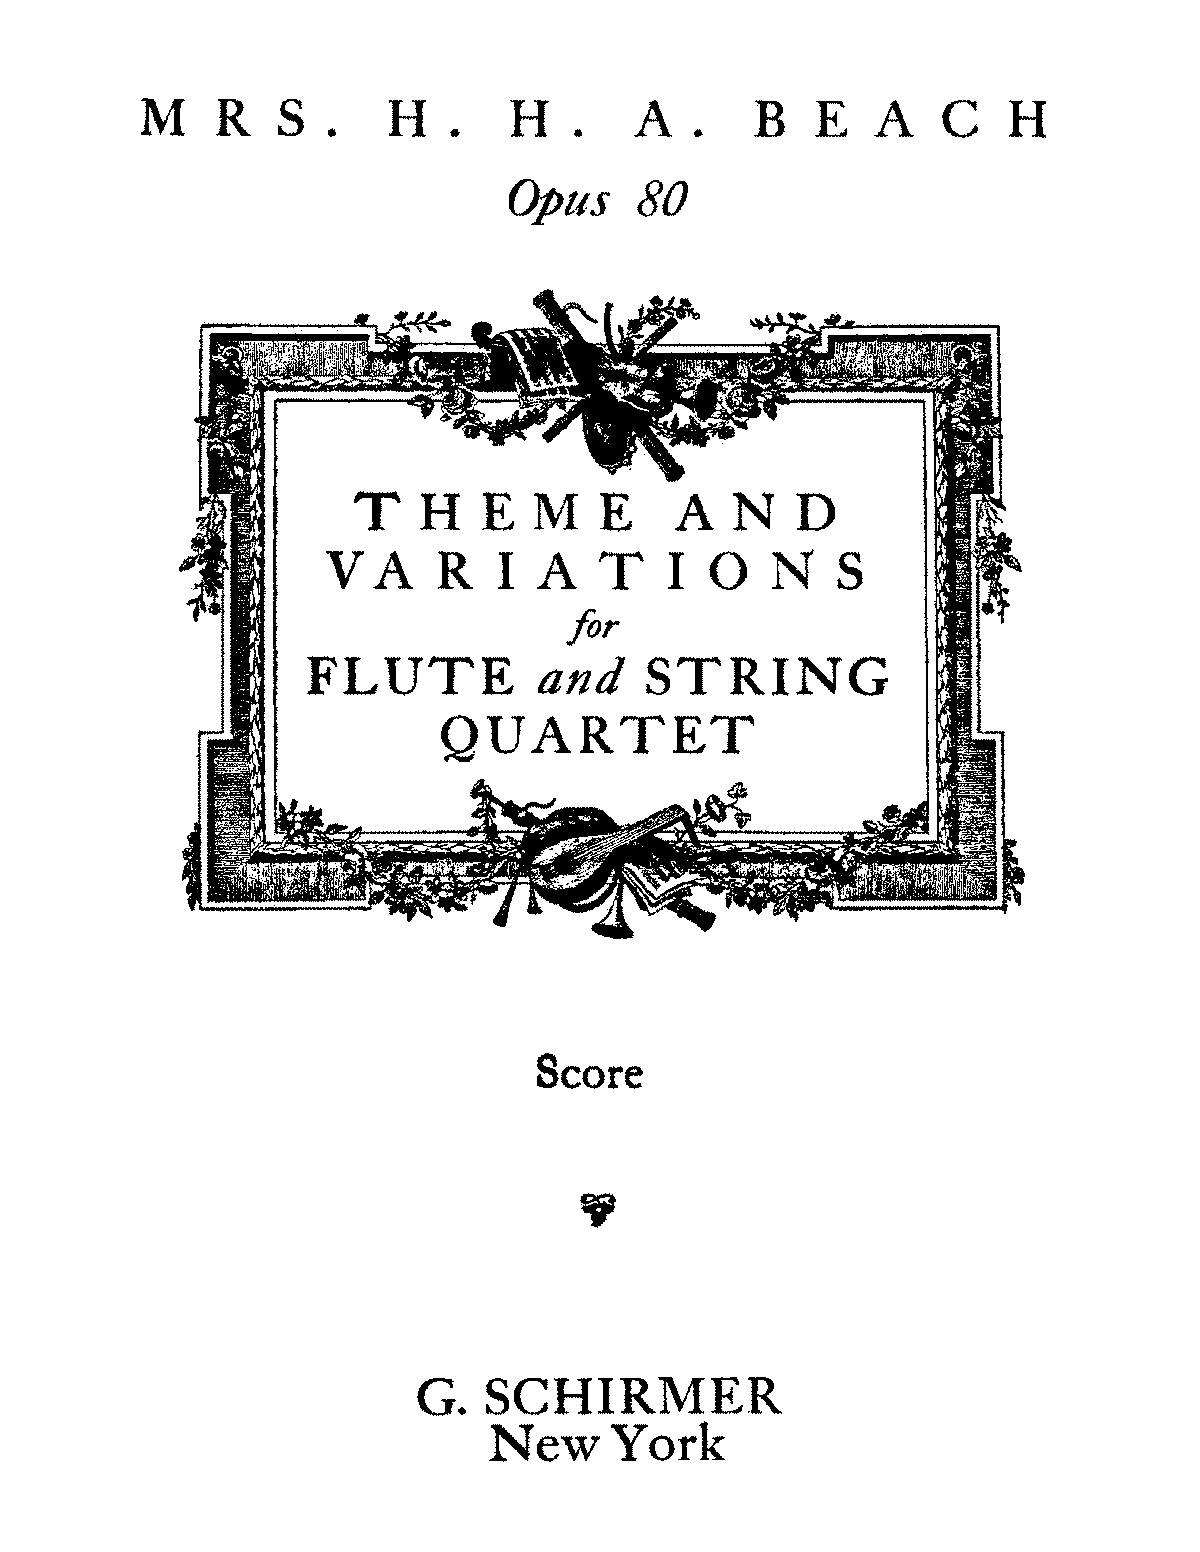 Theme and Variations for Flute and String Quartet, Op.80